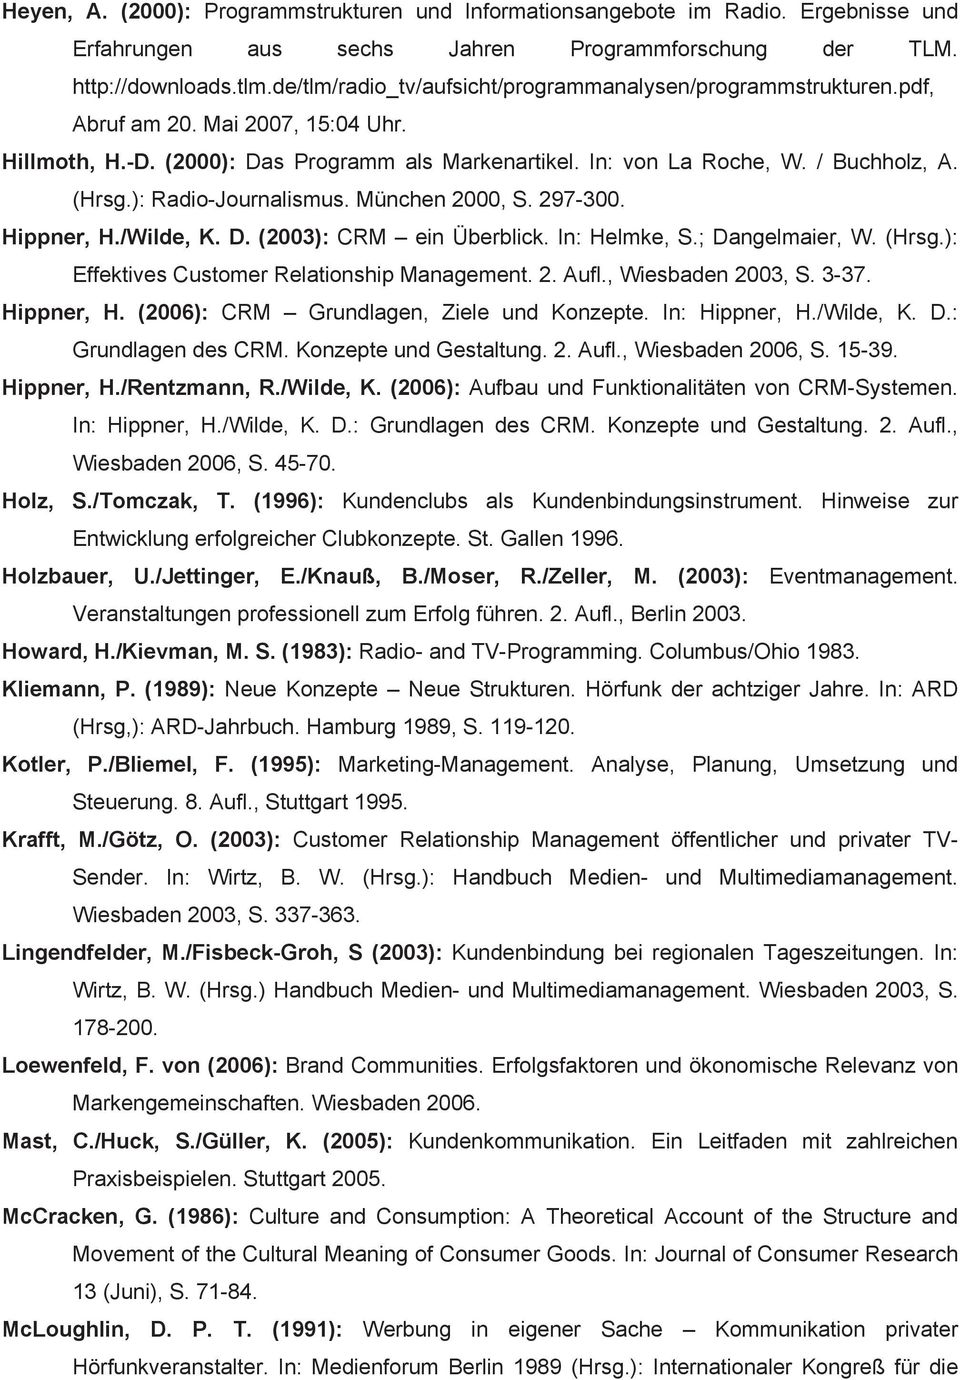 ): Radio-Journalismus. München 2000, S. 297-300. Hippner, H./Wilde, K. D. (2003): CRM ein Überblick. In: Helmke, S.; Dangelmaier, W. (Hrsg.): Effektives Customer Relationship Management. 2. Aufl.